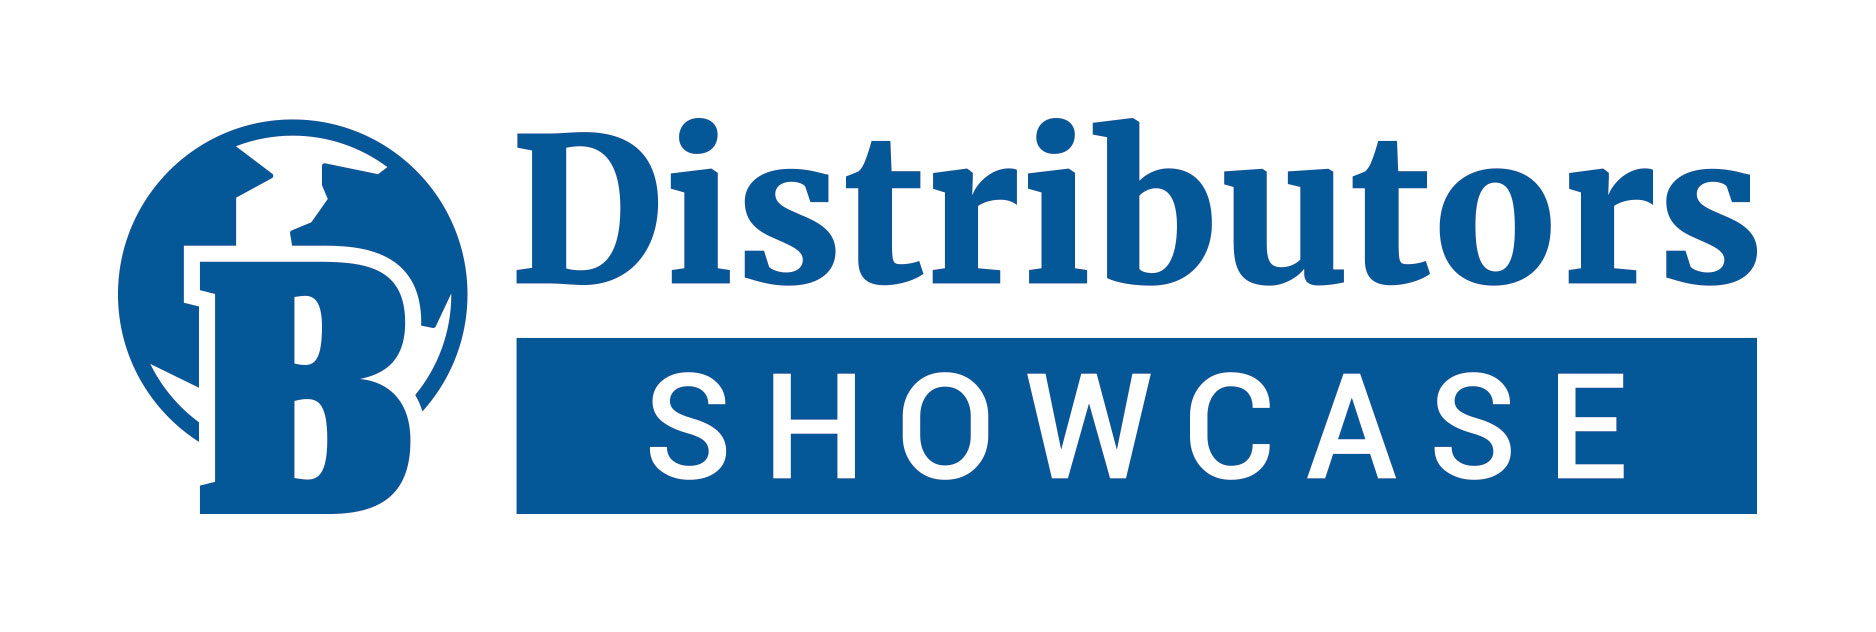 Distributors Showcase